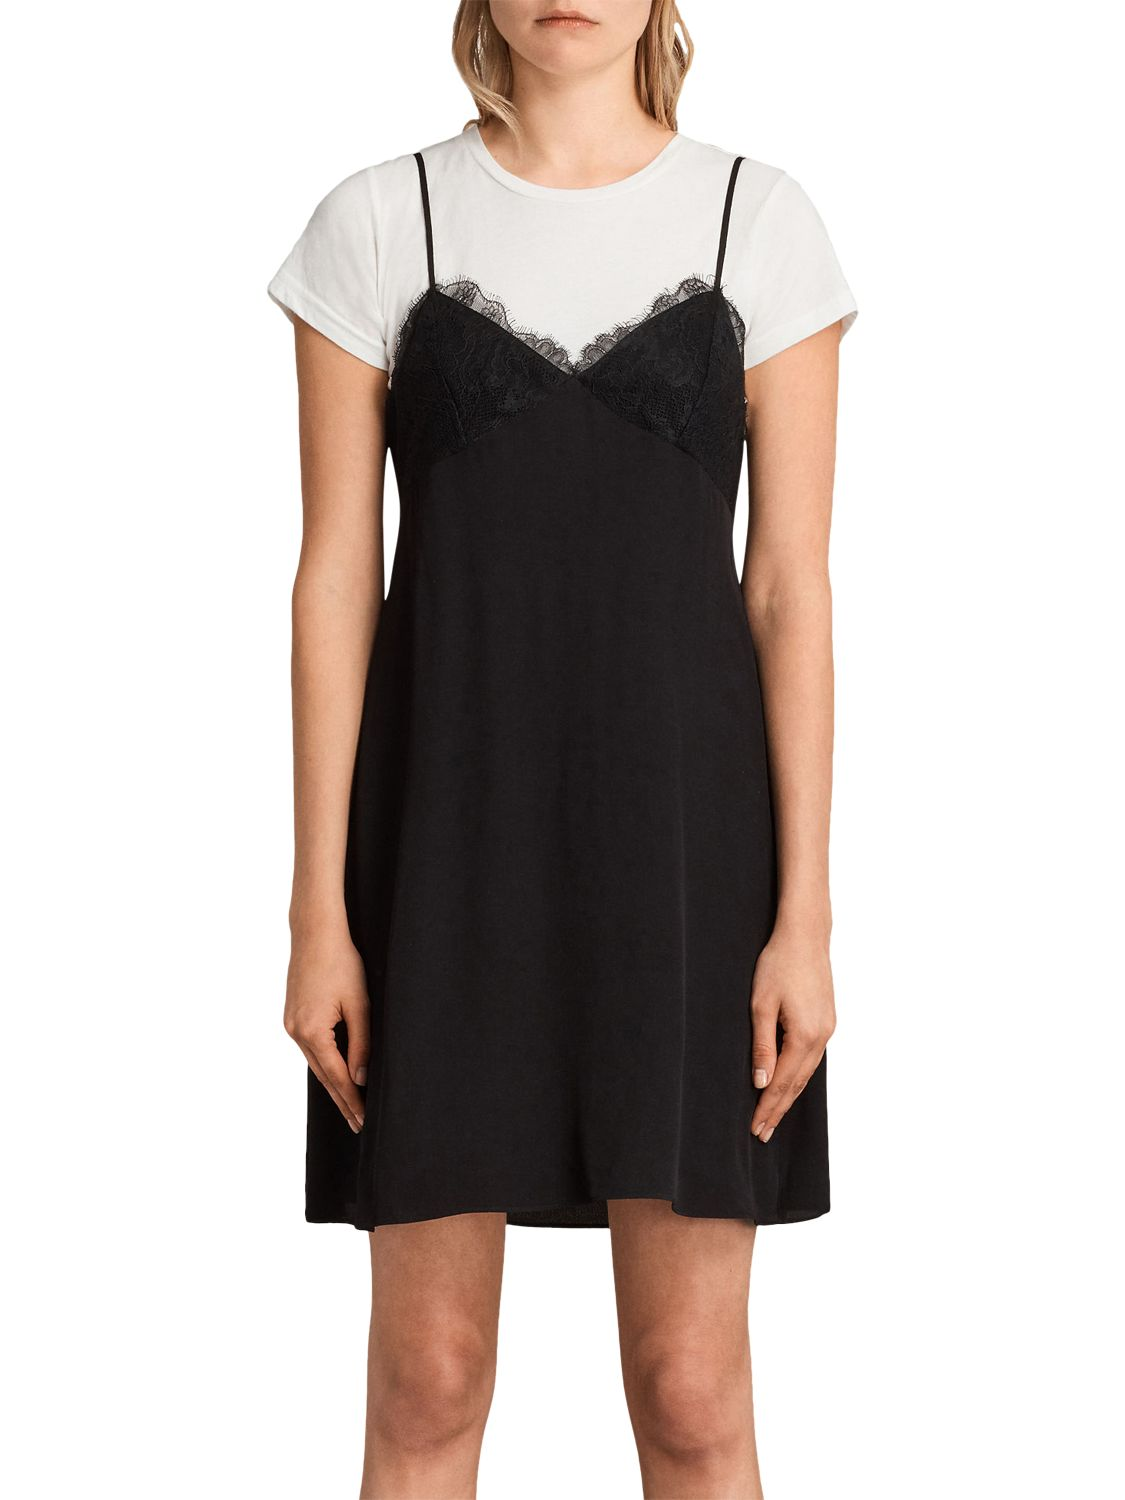 b0633b51e884 AllSaints Ives Dress, Black at John Lewis & Partners